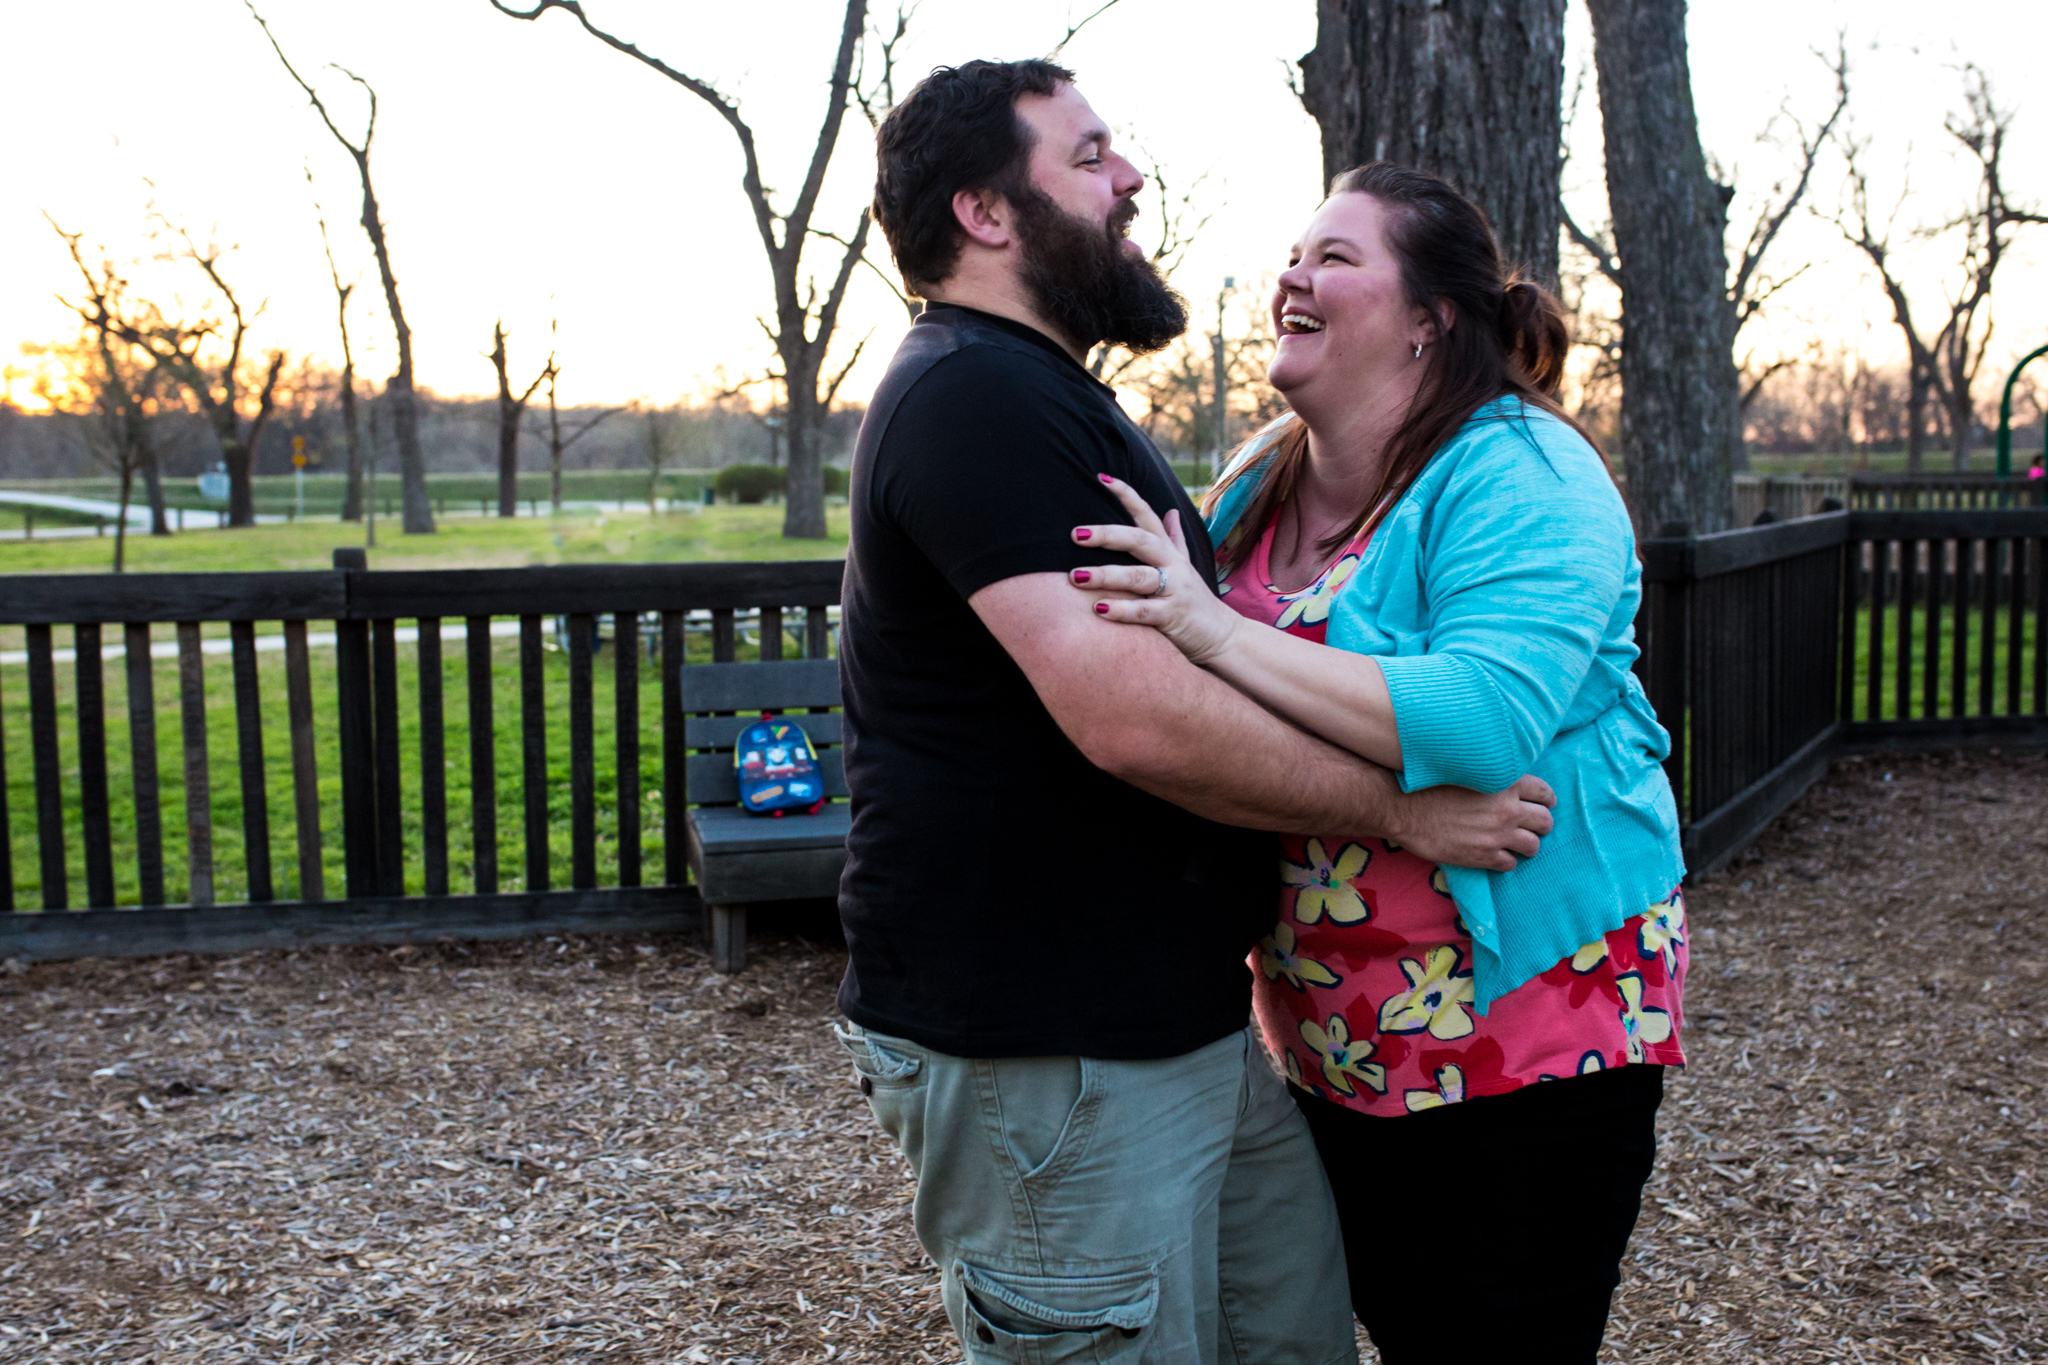 husband and wife laughing and holding each other